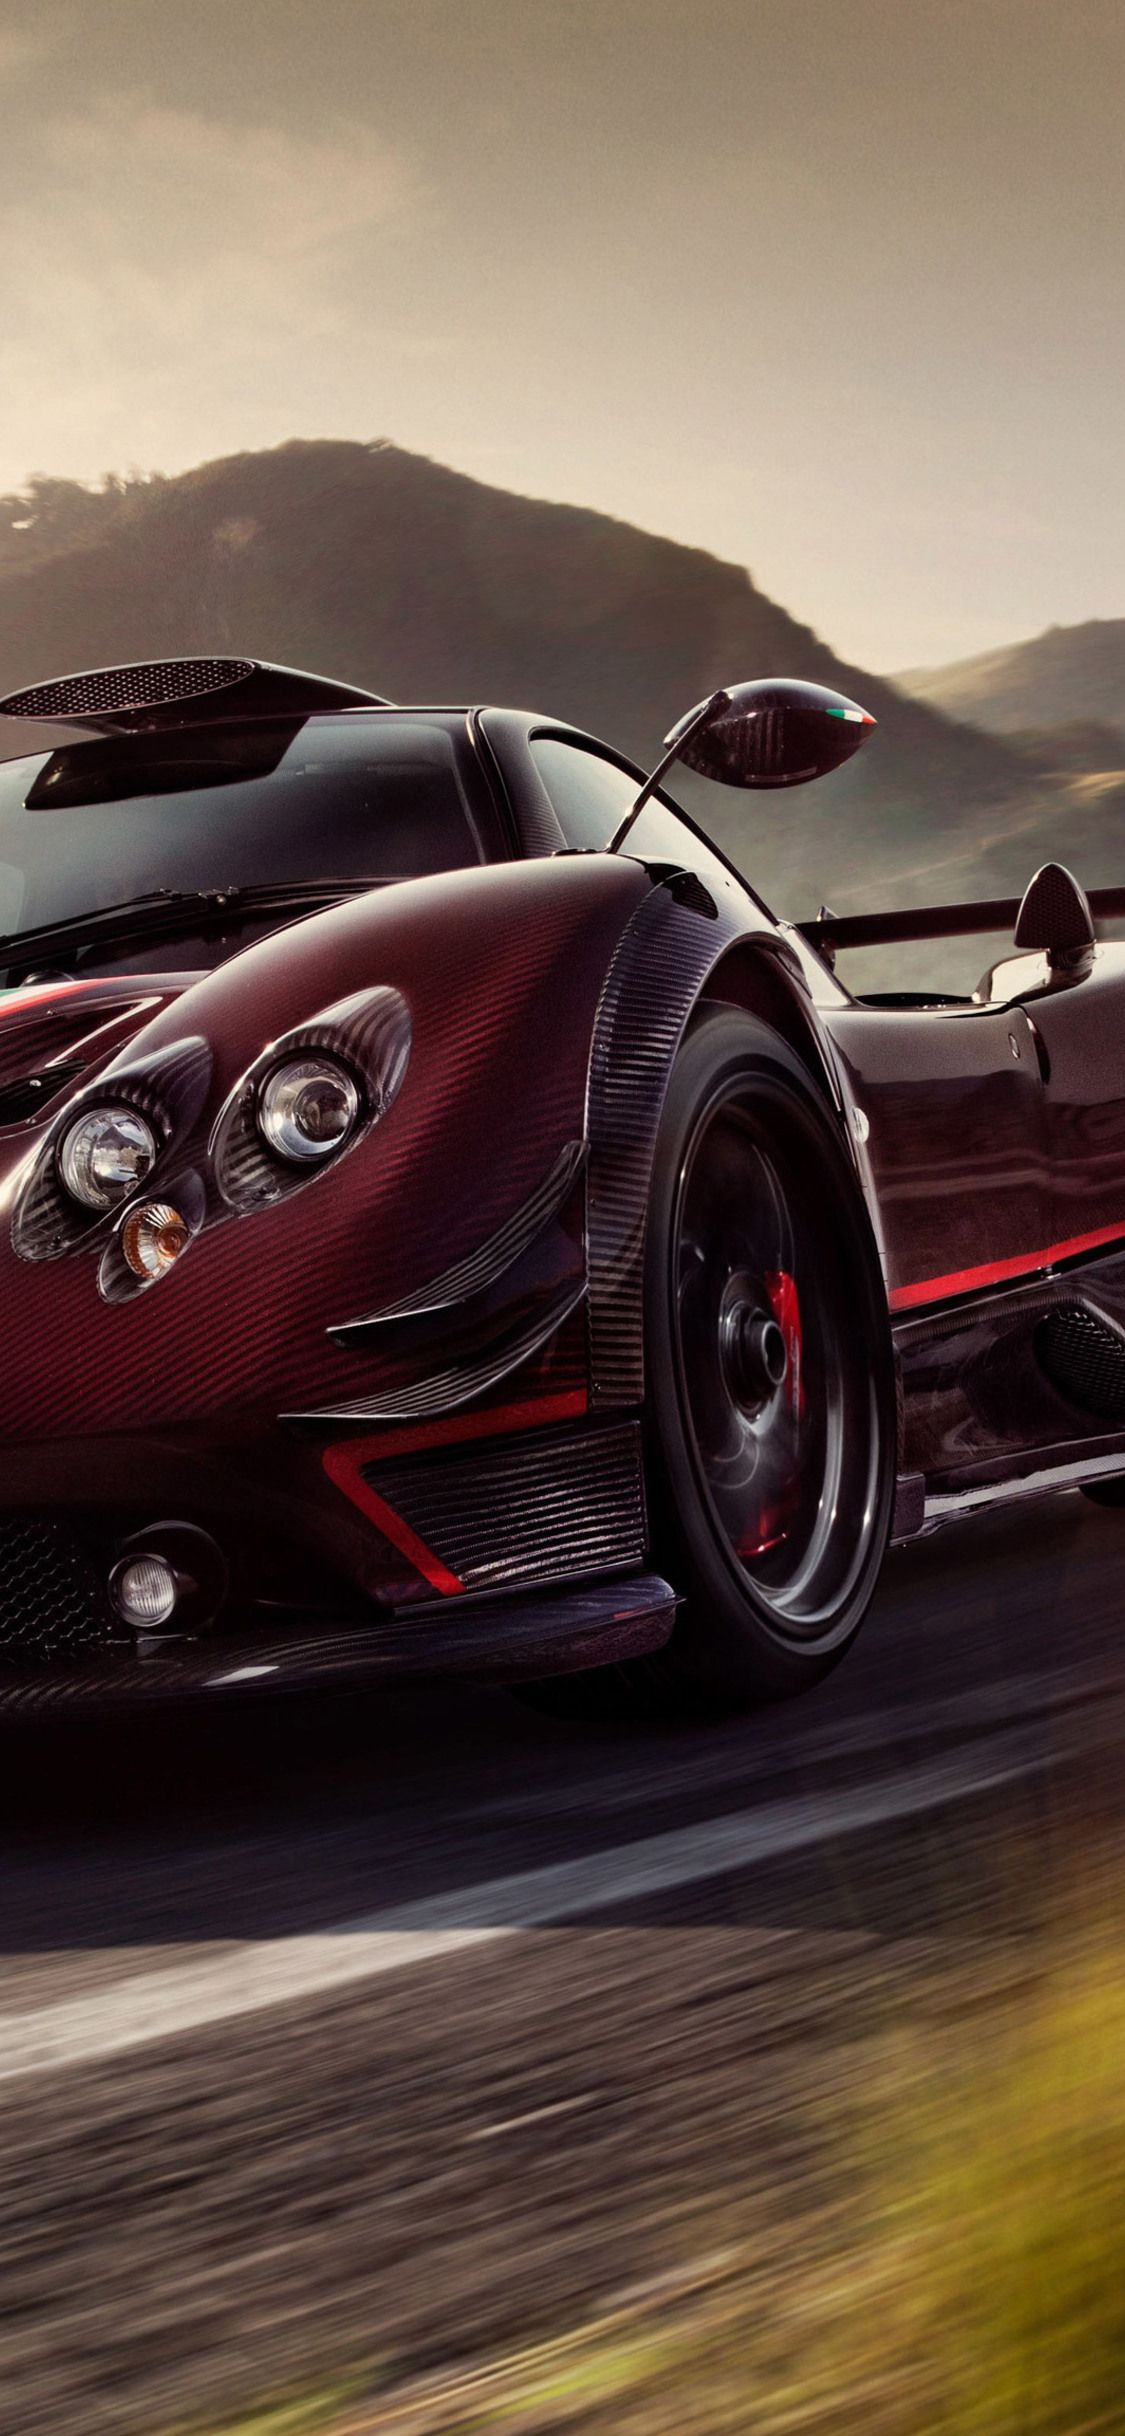 Pagani Iphone Wallpapers Top Free Pagani Iphone Backgrounds